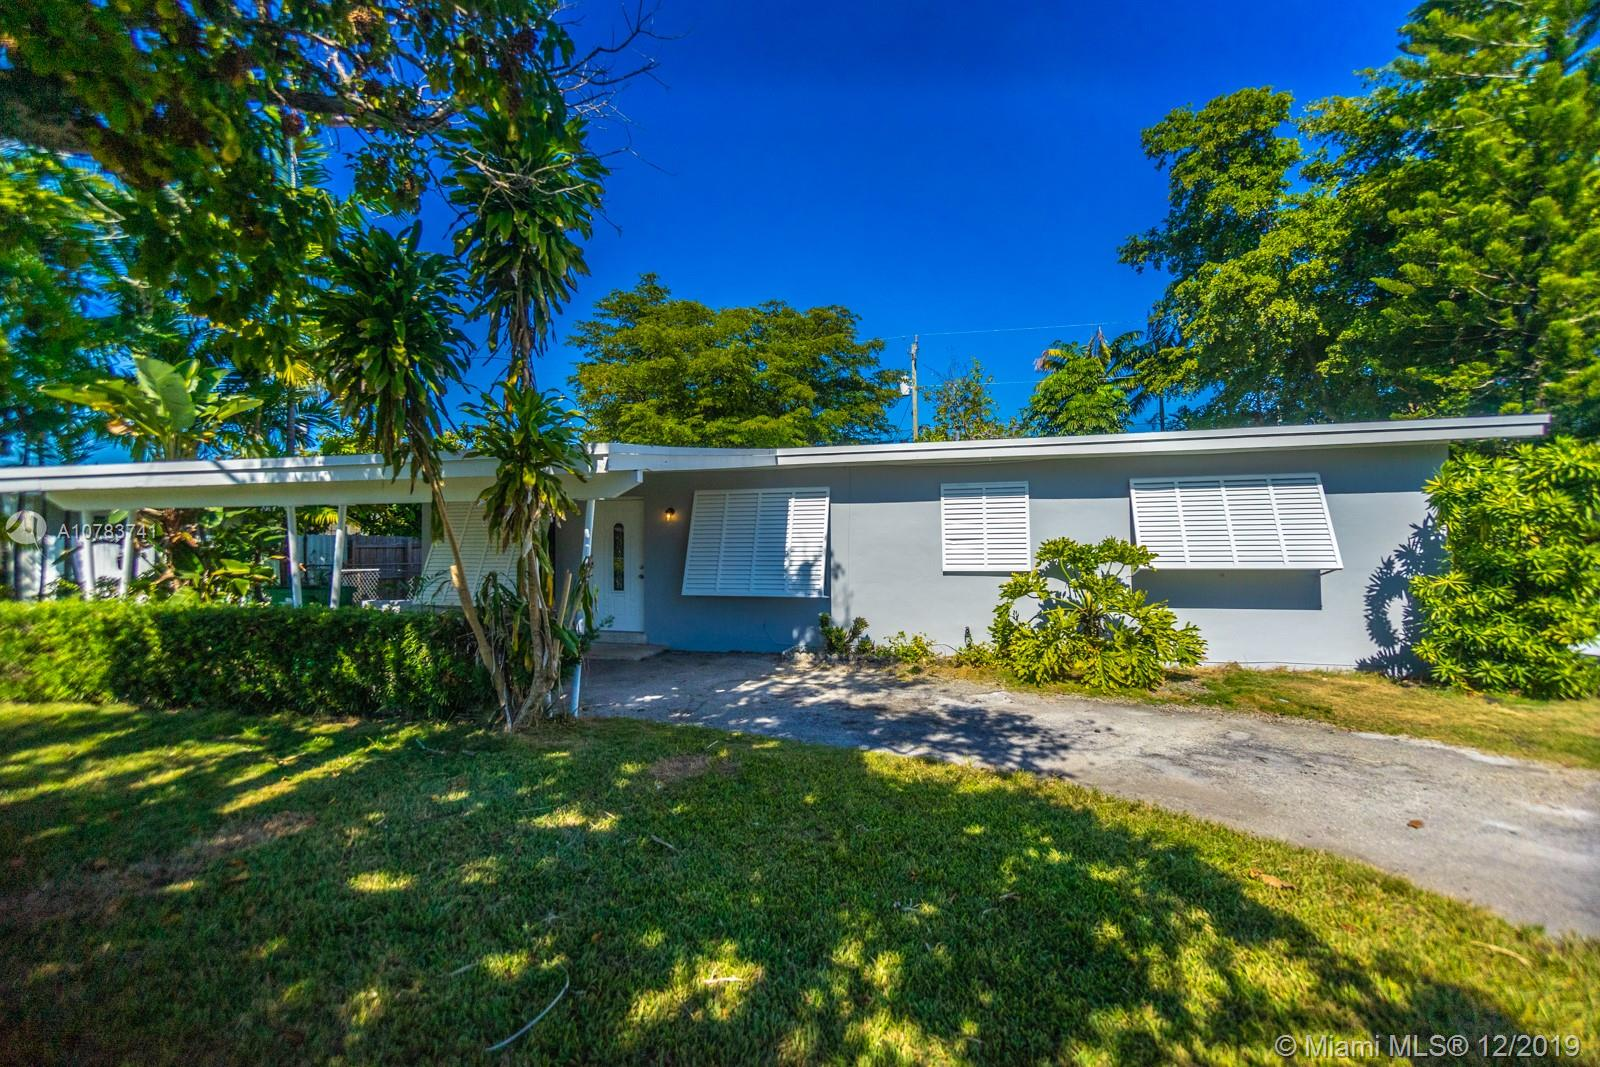 14465 SW 289th St, Homestead, FL 33033 - Homestead, FL real estate listing